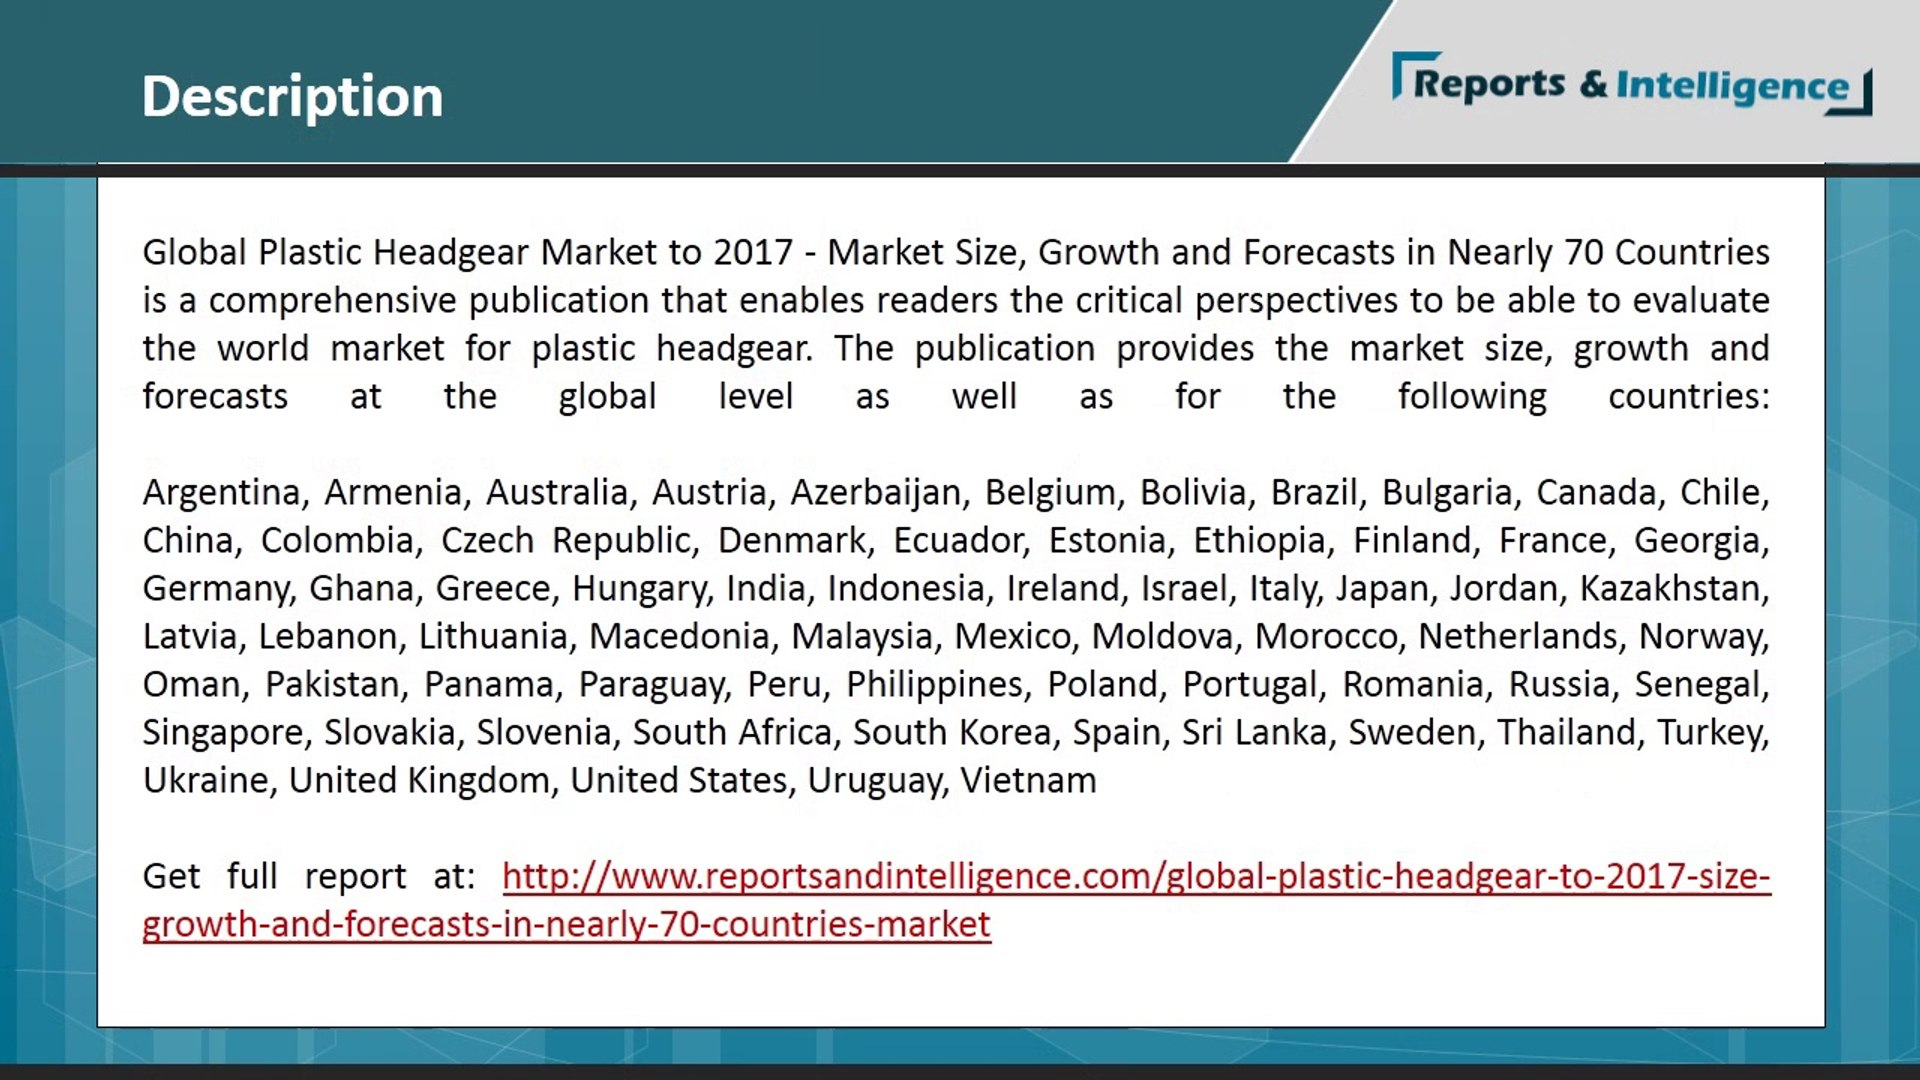 Plastic Headgear Market to 2017 - Market Size, Growth and Forecasts in Nearly 70 Countries